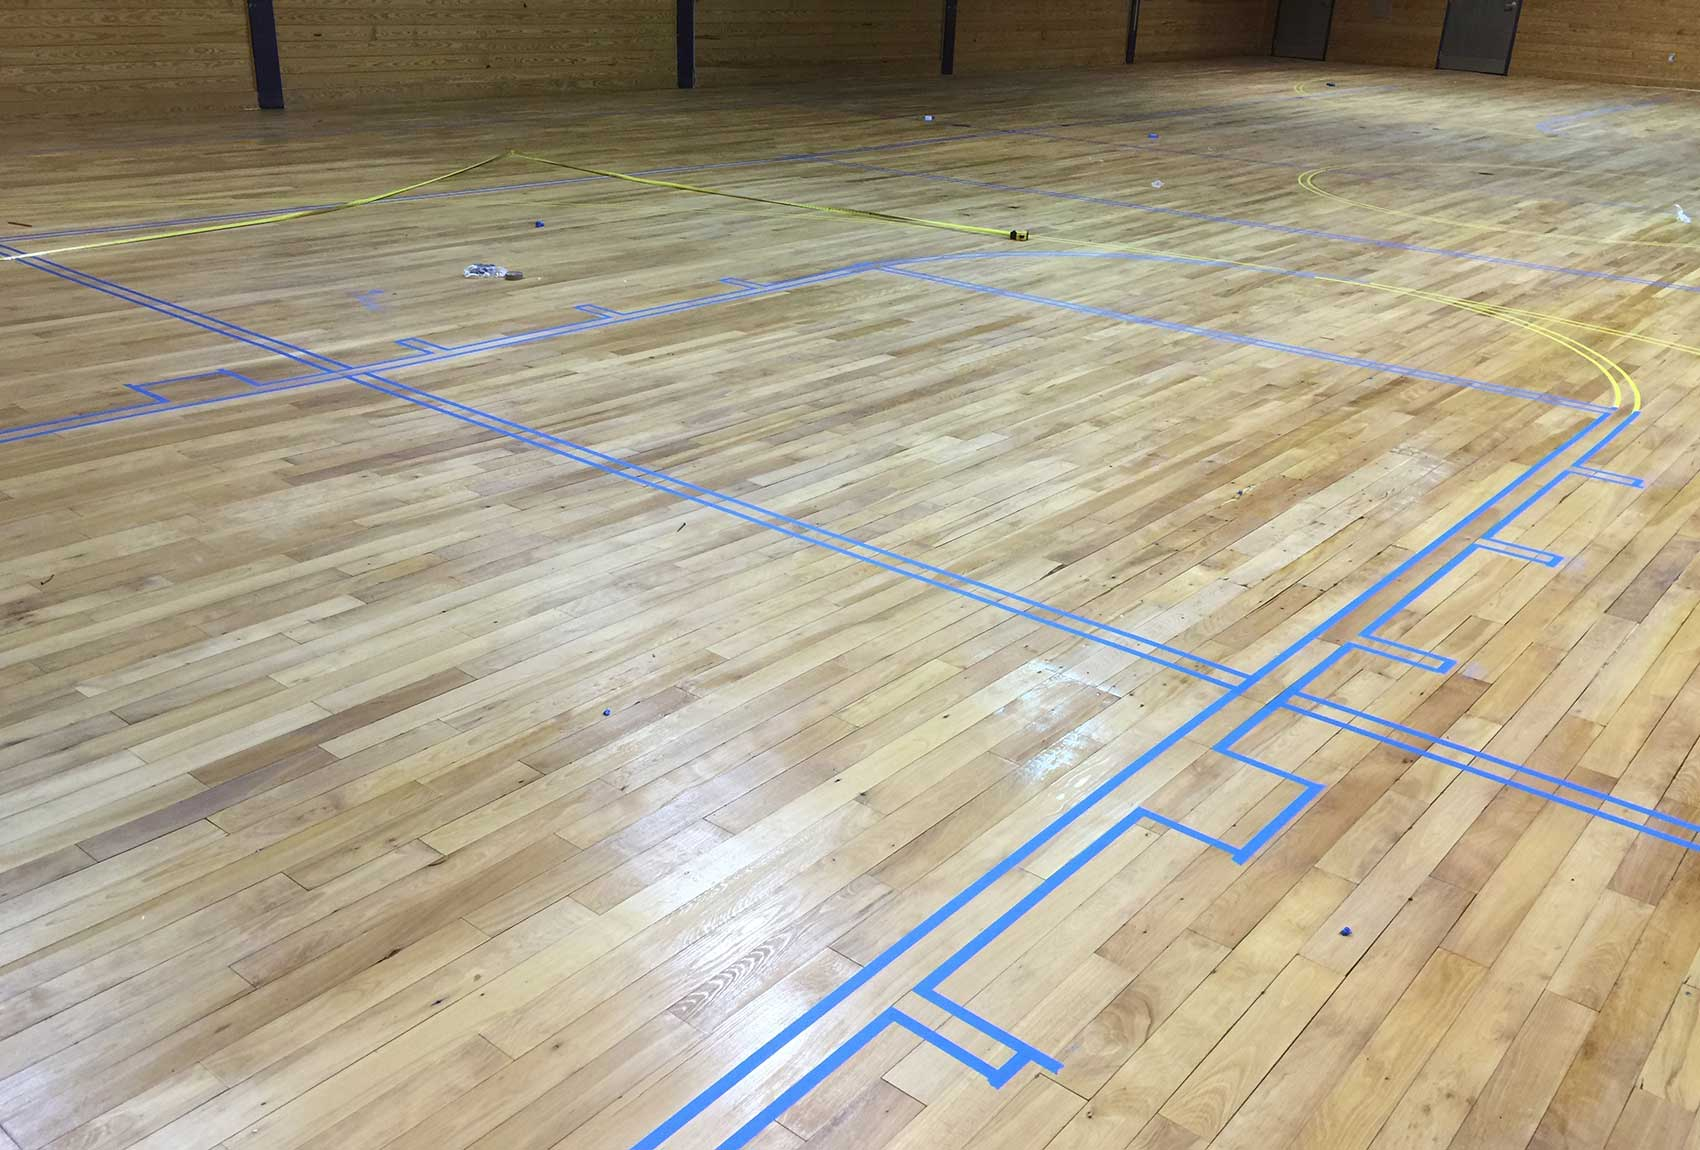 hawaii of graphic out really spacious pin floors this stands university in floor stadium basketball